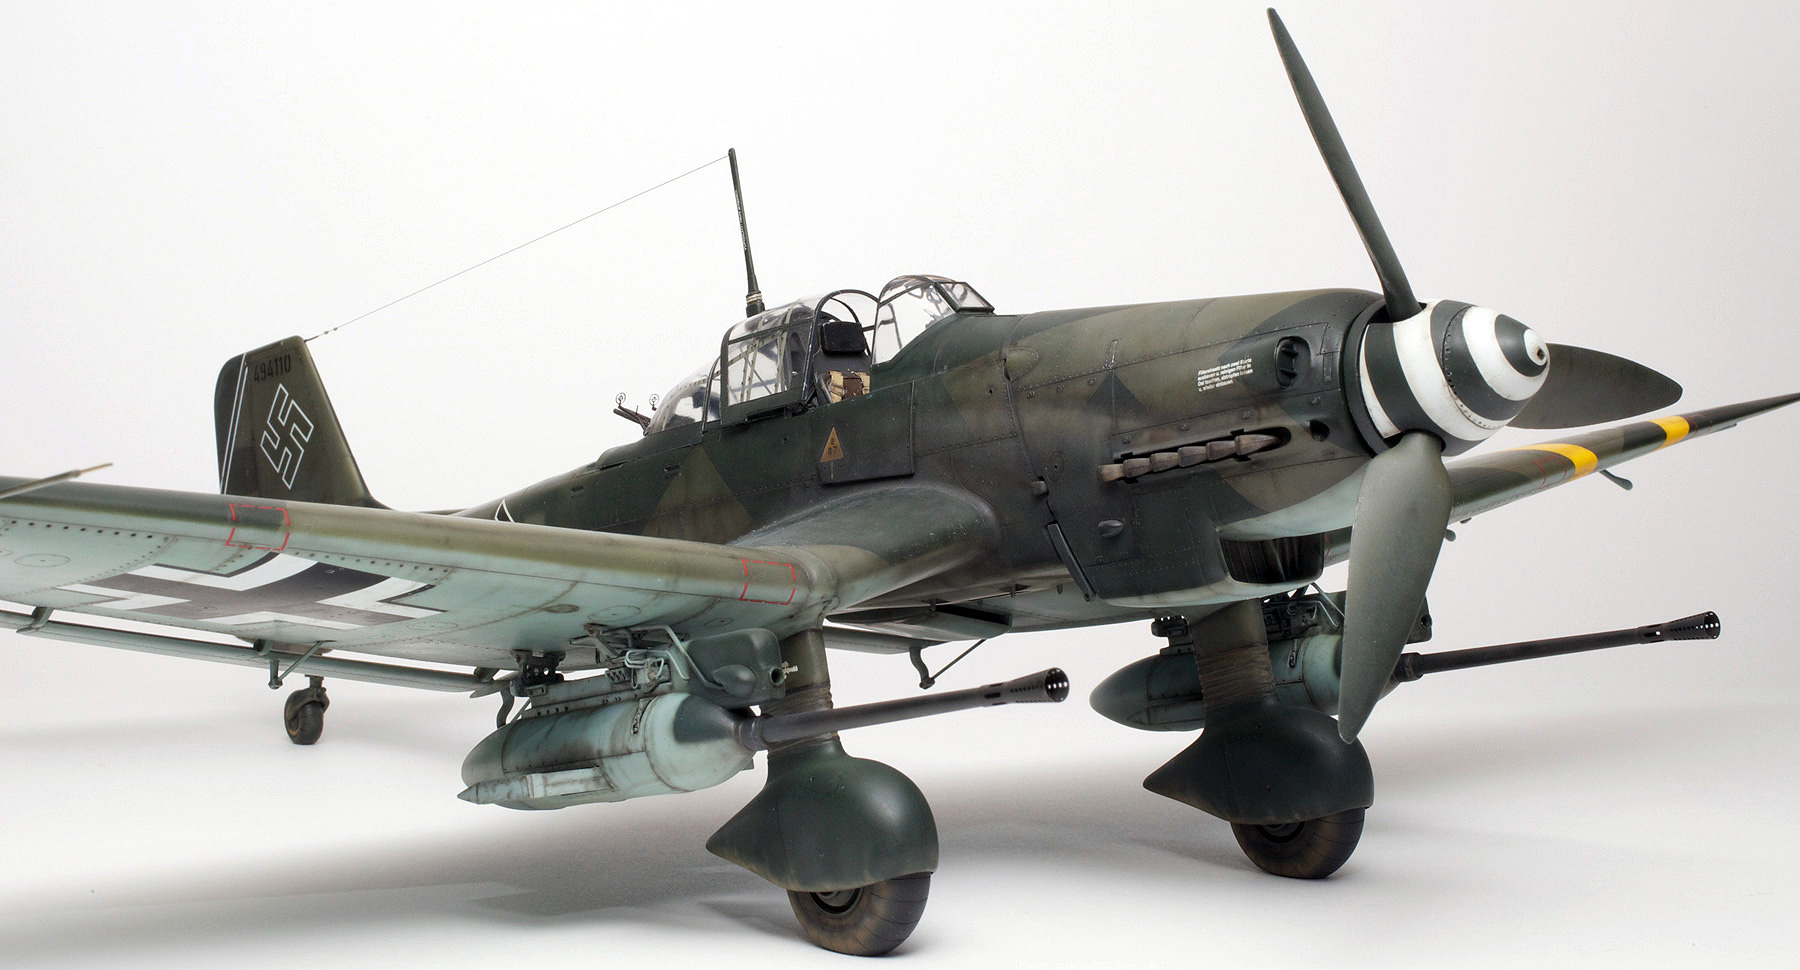 scratch built airplane with Hasegawa 132 Ju87g2 Stuka Kanonvogel on File Alc Rb66 as well Watch as well Microturbineguide besides 3 View Drawings For The Dc 3 Project further Messerschmitt Bf 109.